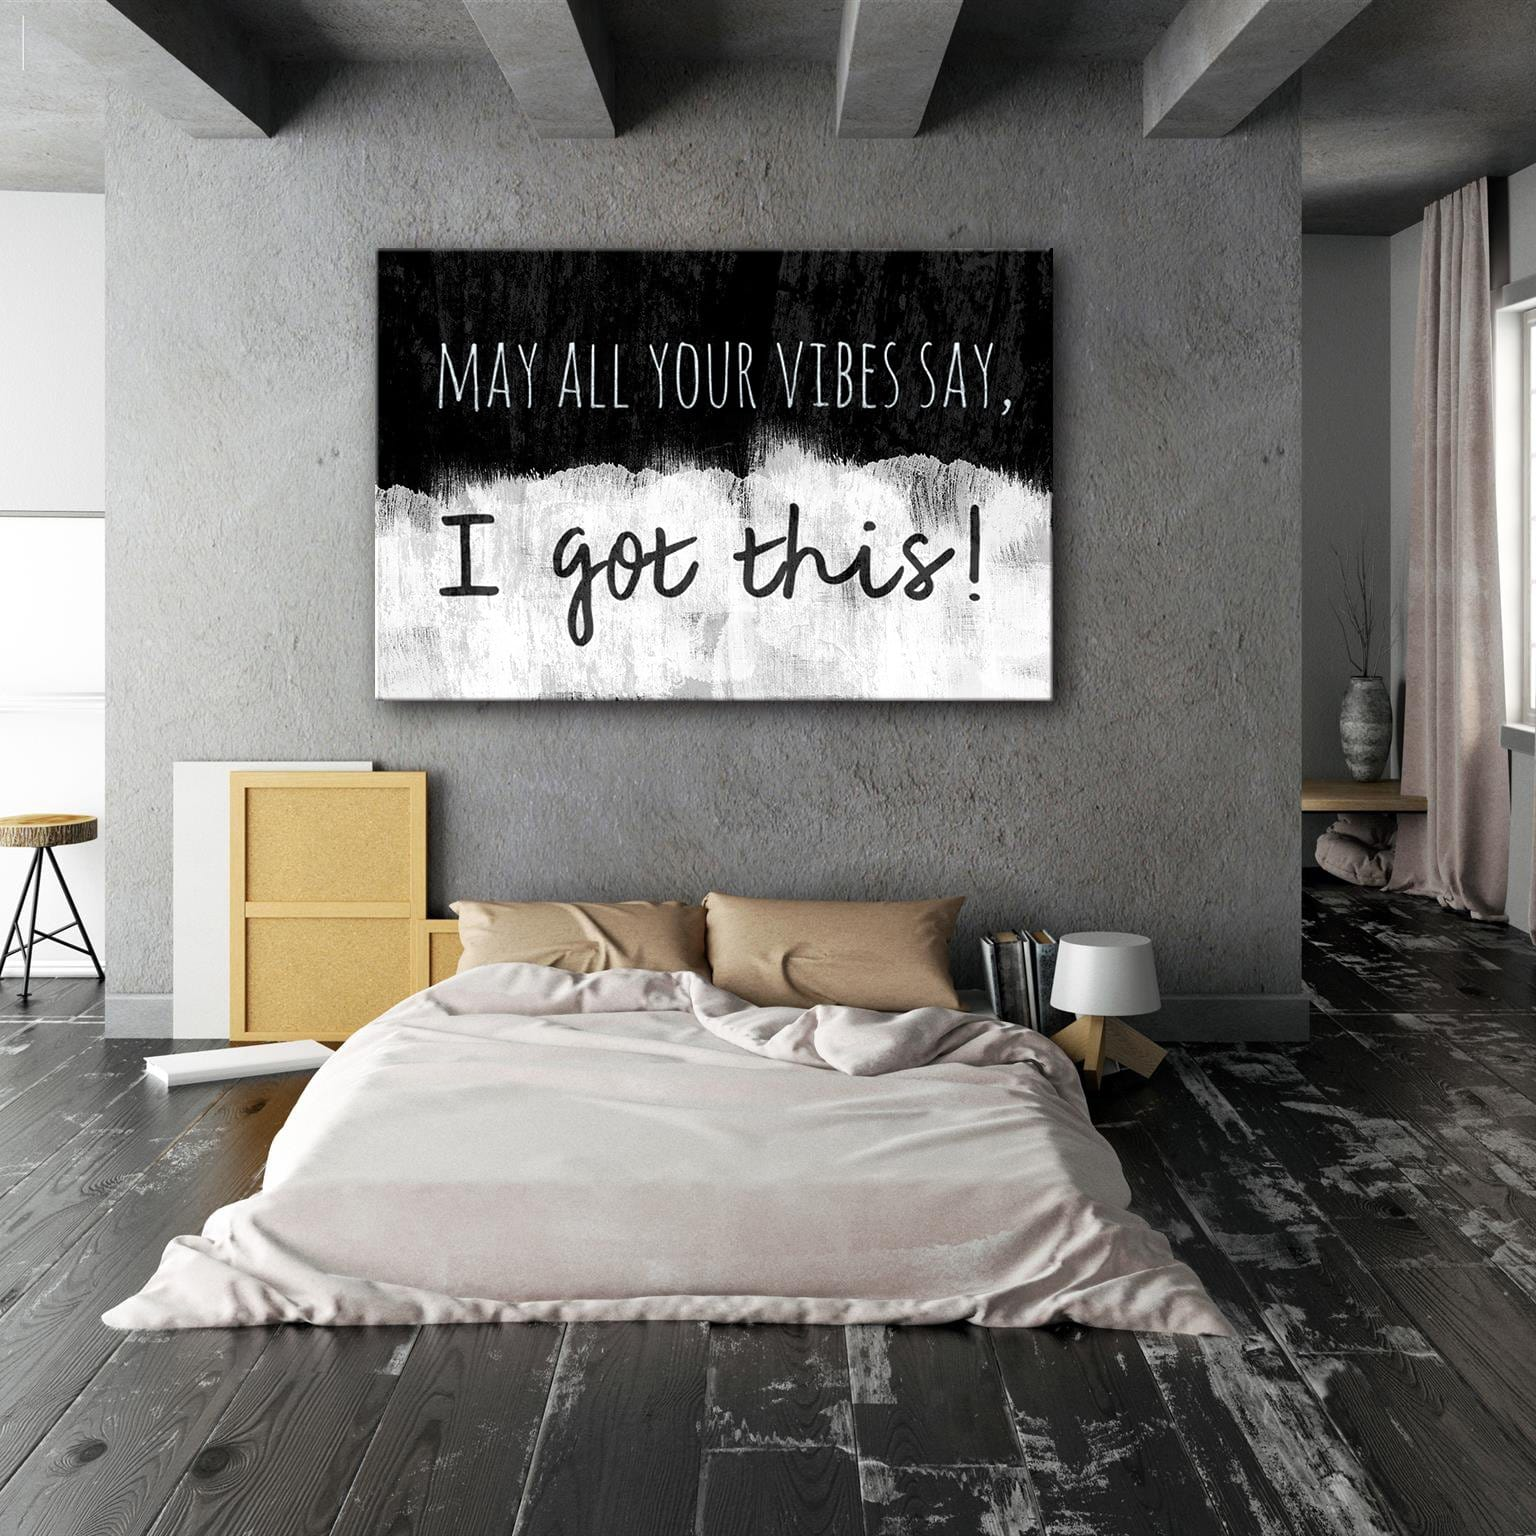 May all your vibes - Framed Canvas Painting Wall Art Office Decor, large modern pop artwork for home or office, Entrepreneur Inspirational and motivational Quotes on Canvas great for man cave or home. Perfect for Artwork Addicts. Made in USA, FREE Shipping.